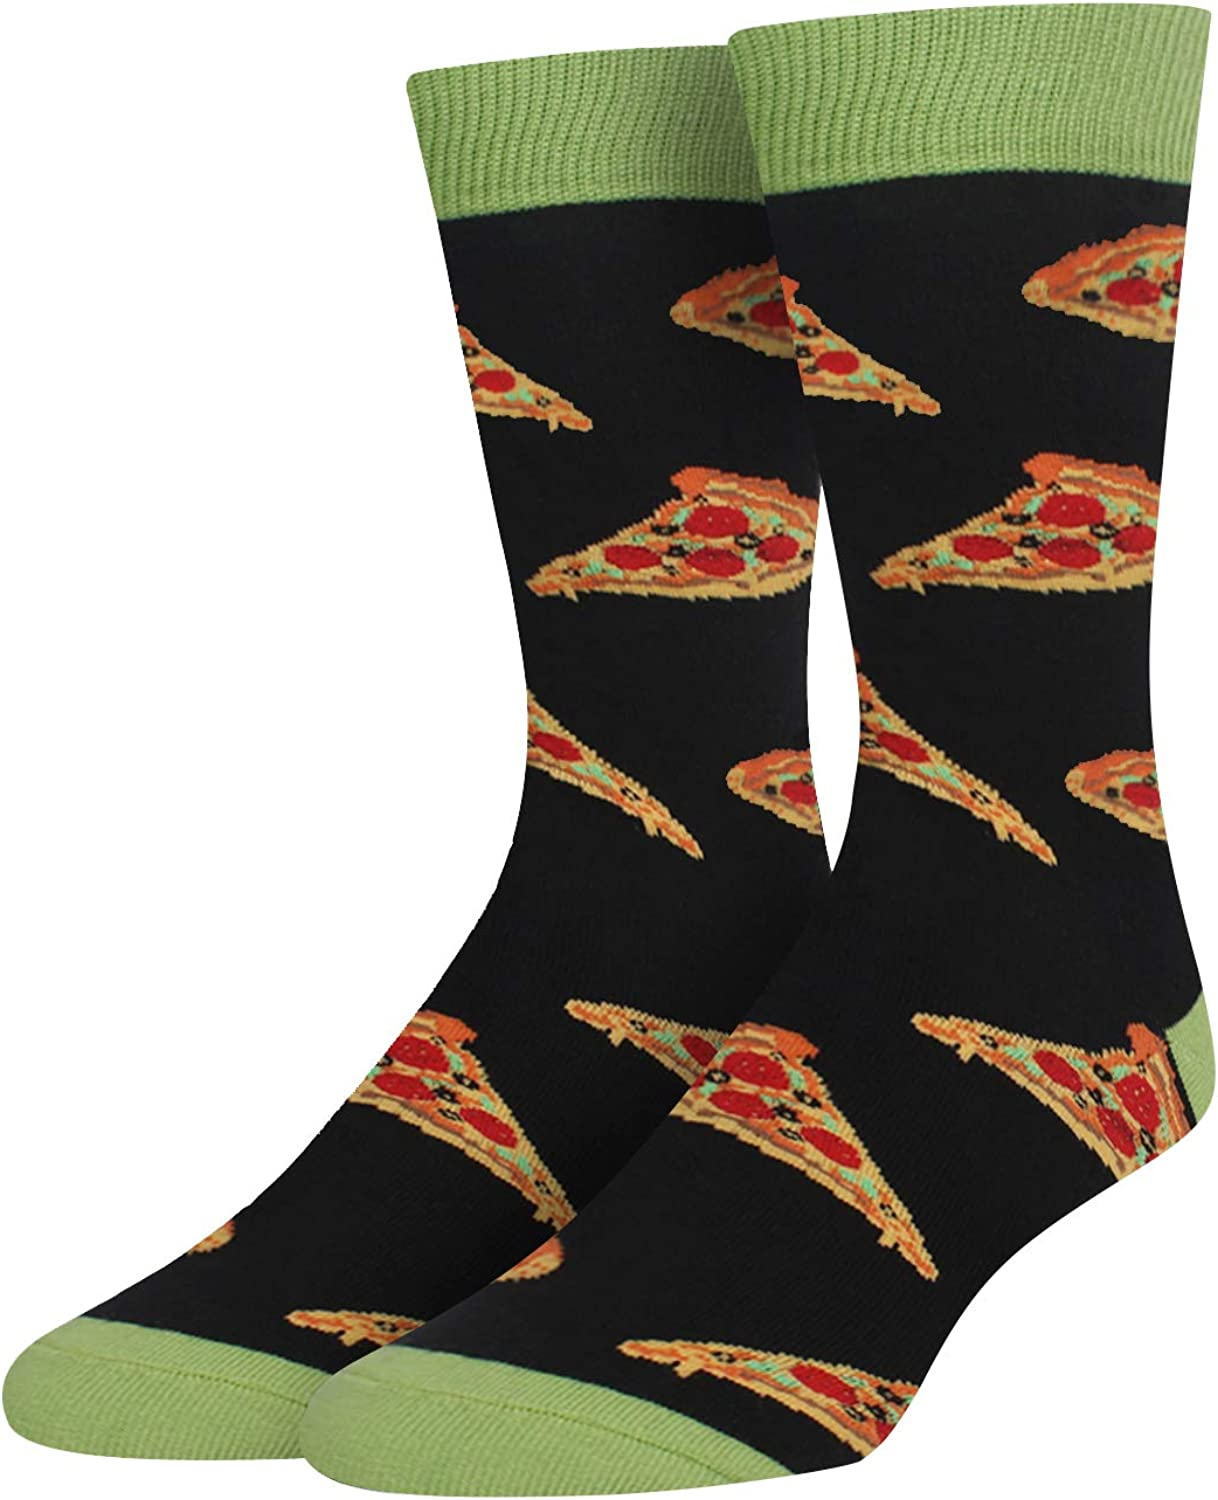 HAPPYPOP Men's Funny Taco Pickle Dill Donut Socks Crazy Food Socks for Food Lover